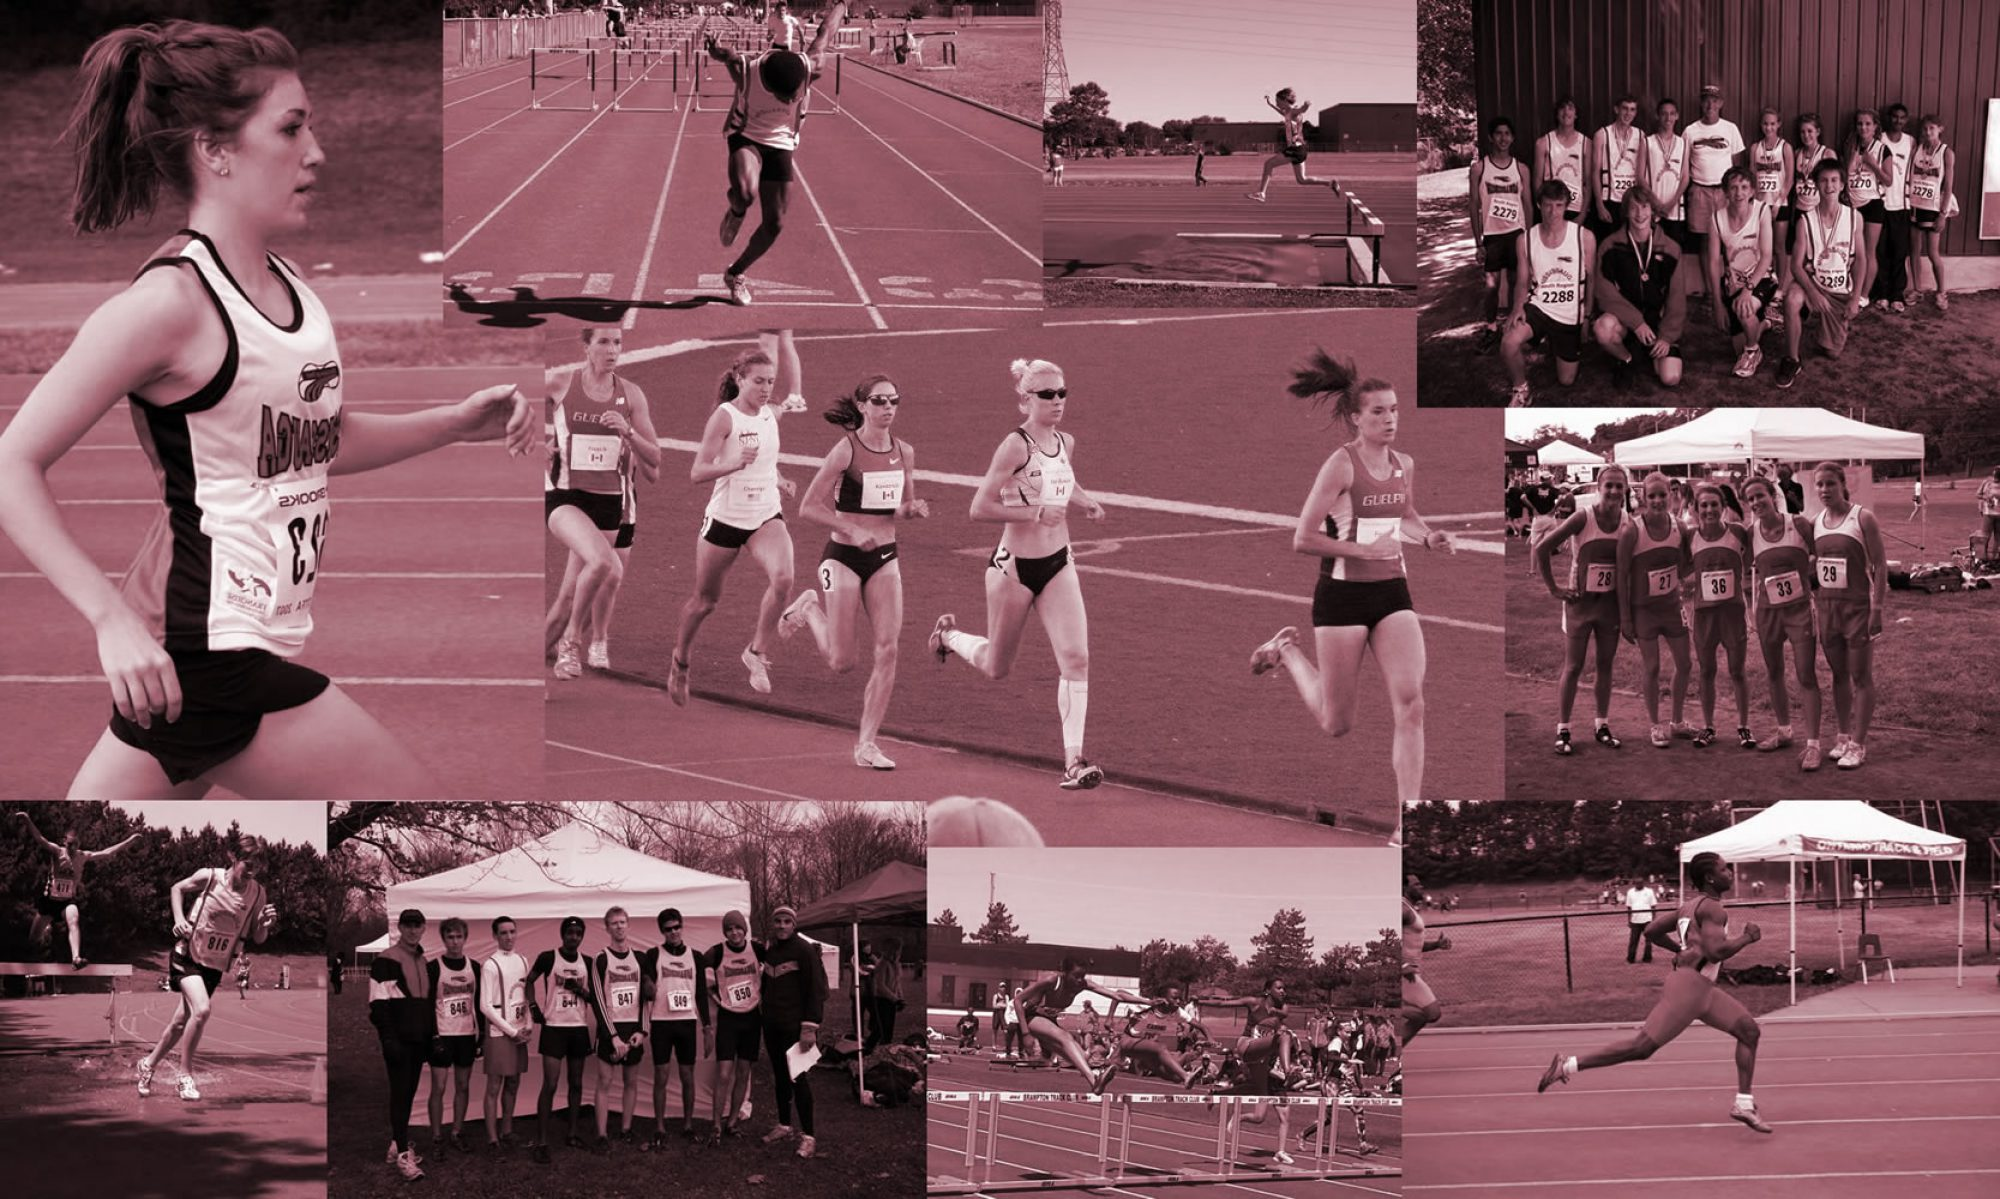 MISSISSAUGA TRACK & FIELD CLUB